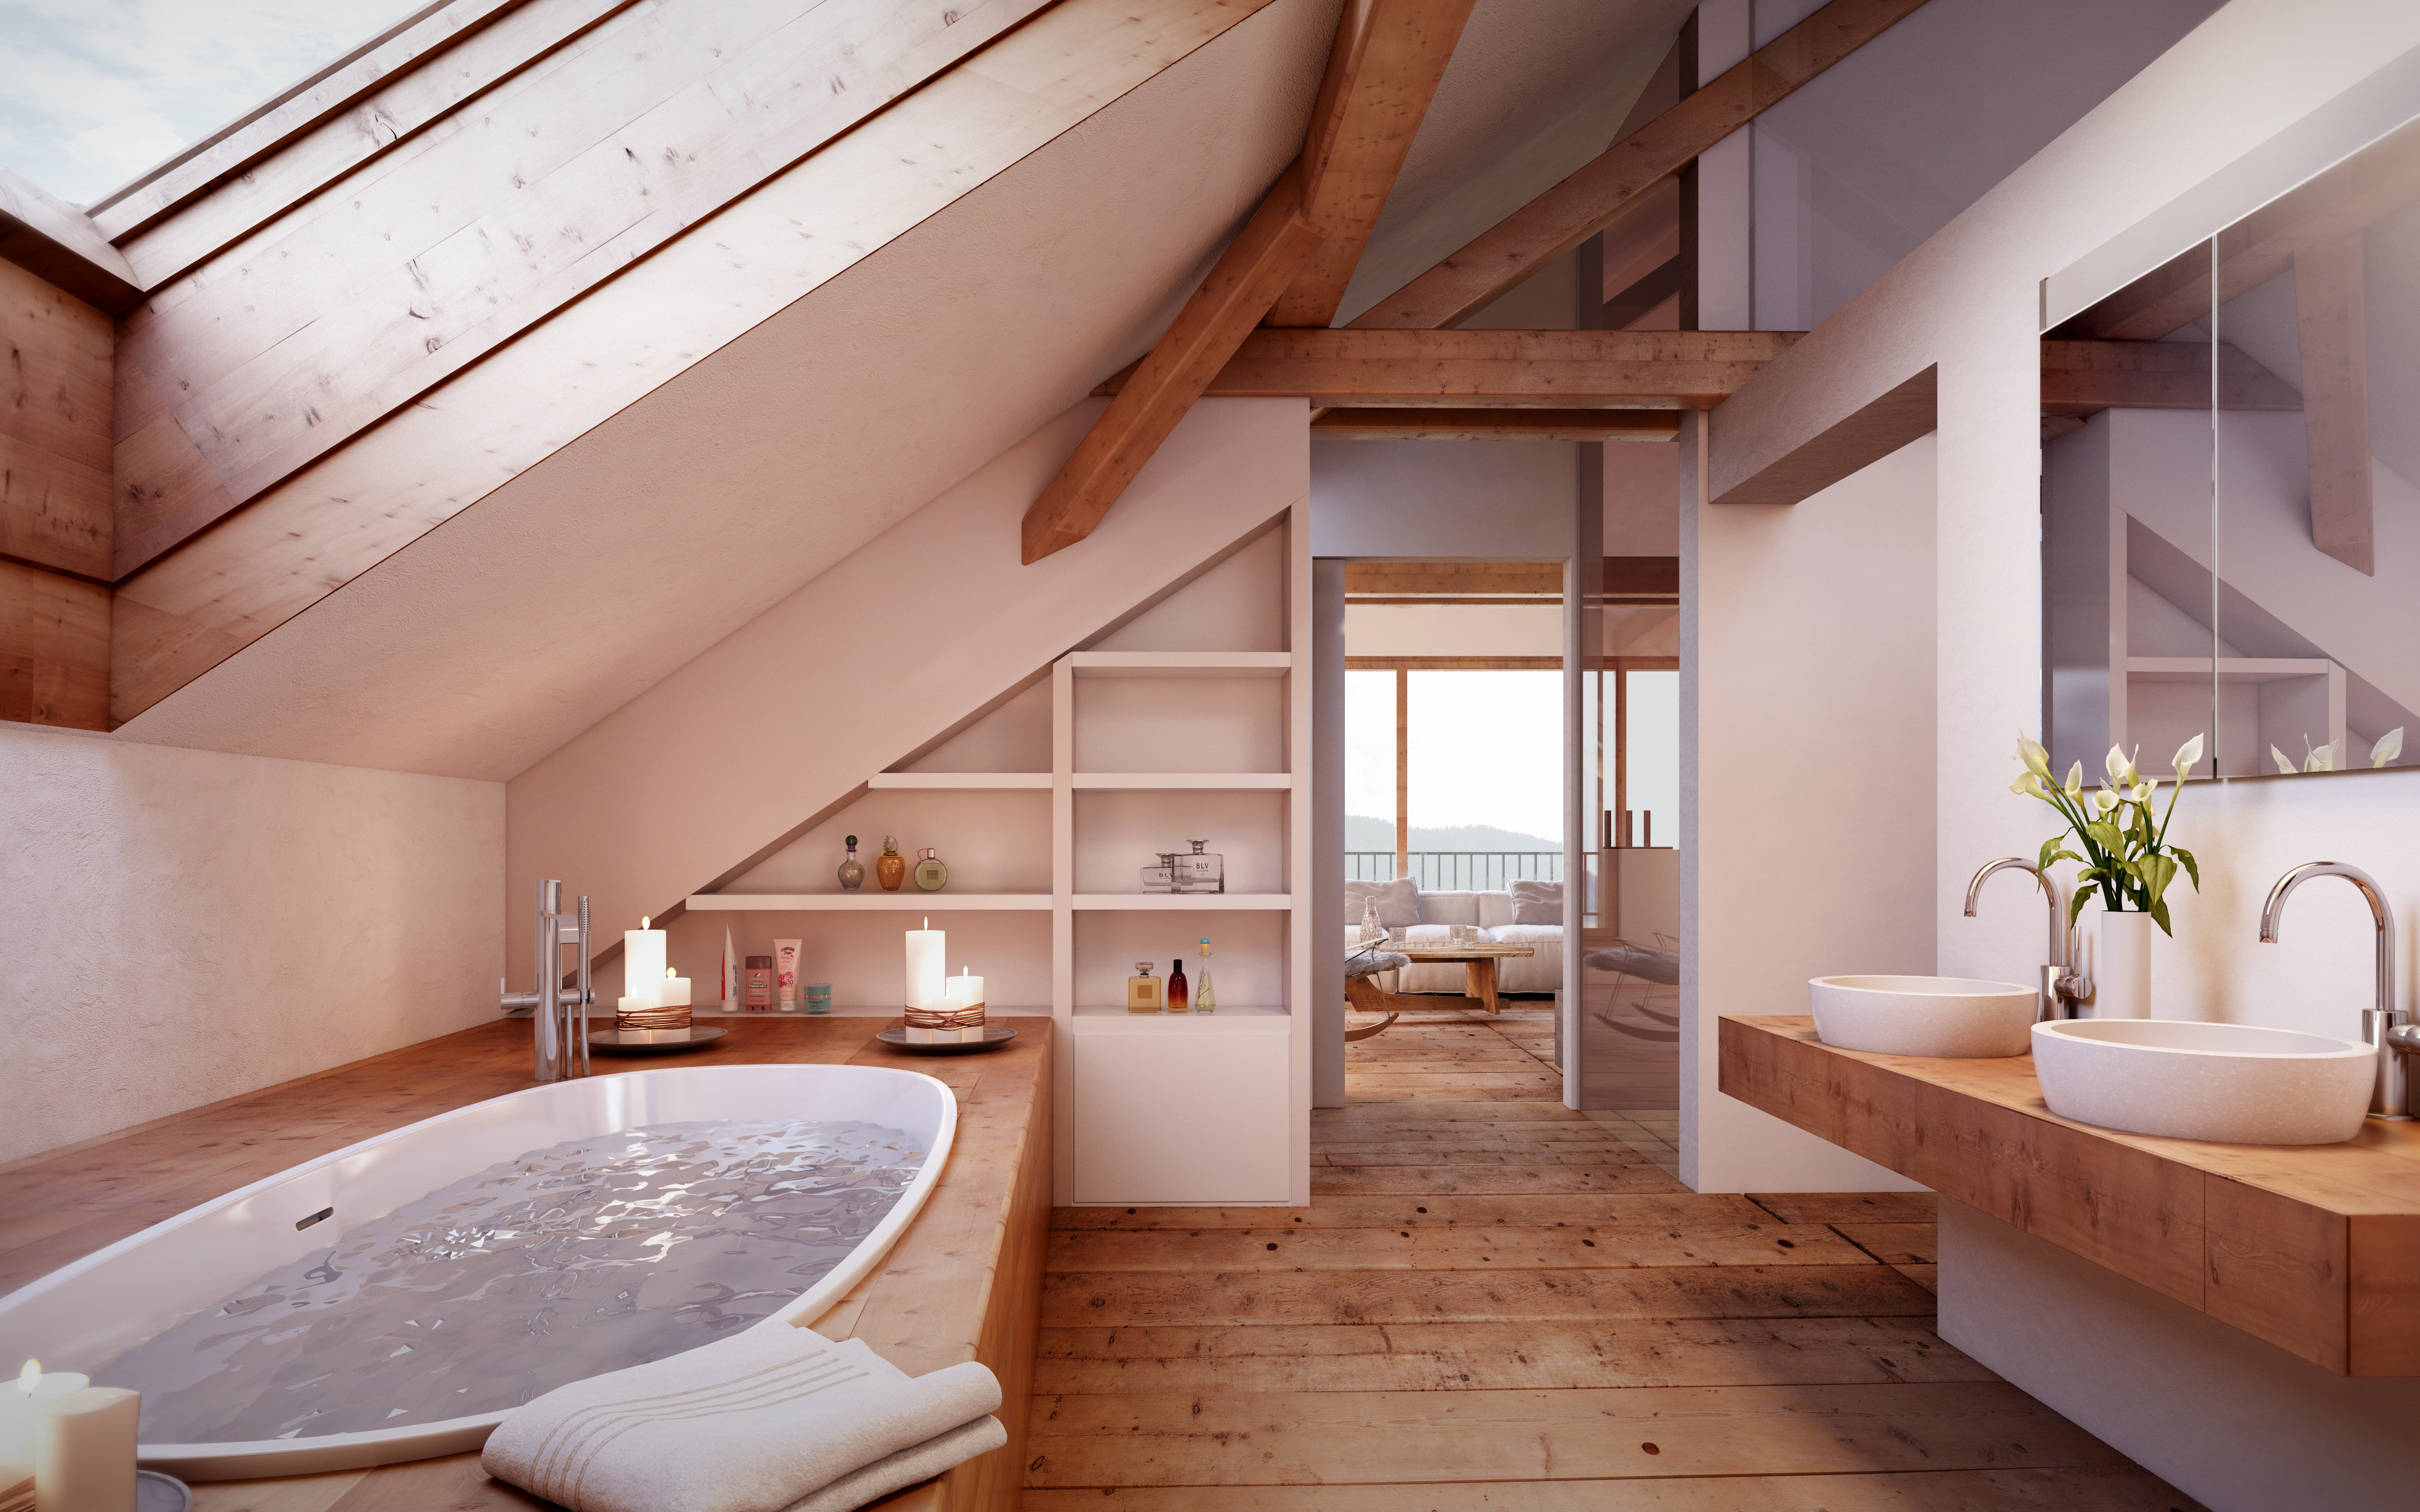 Dachgeschosswohnung Ausbauen Comfortable And Cozy 30 Attic Apartment Inspirations